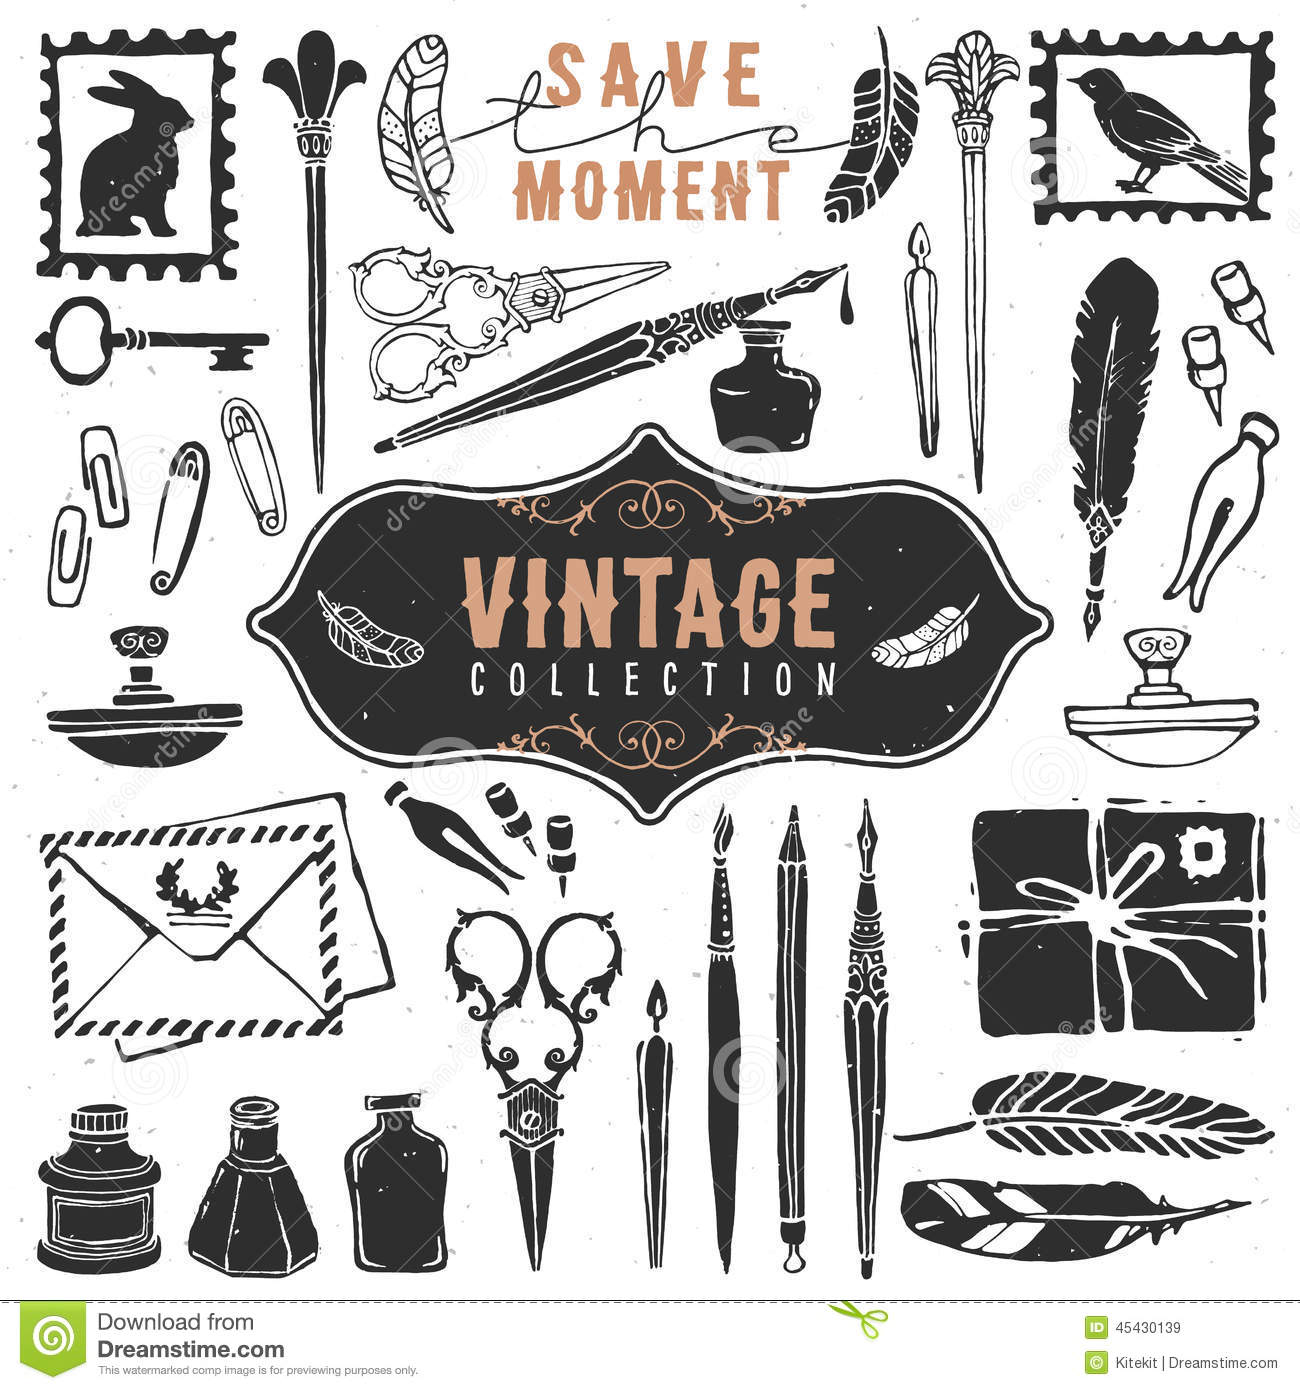 Classic Retro Illustration: Vintage Retro Old Things Writer Crafted Collection. Stock